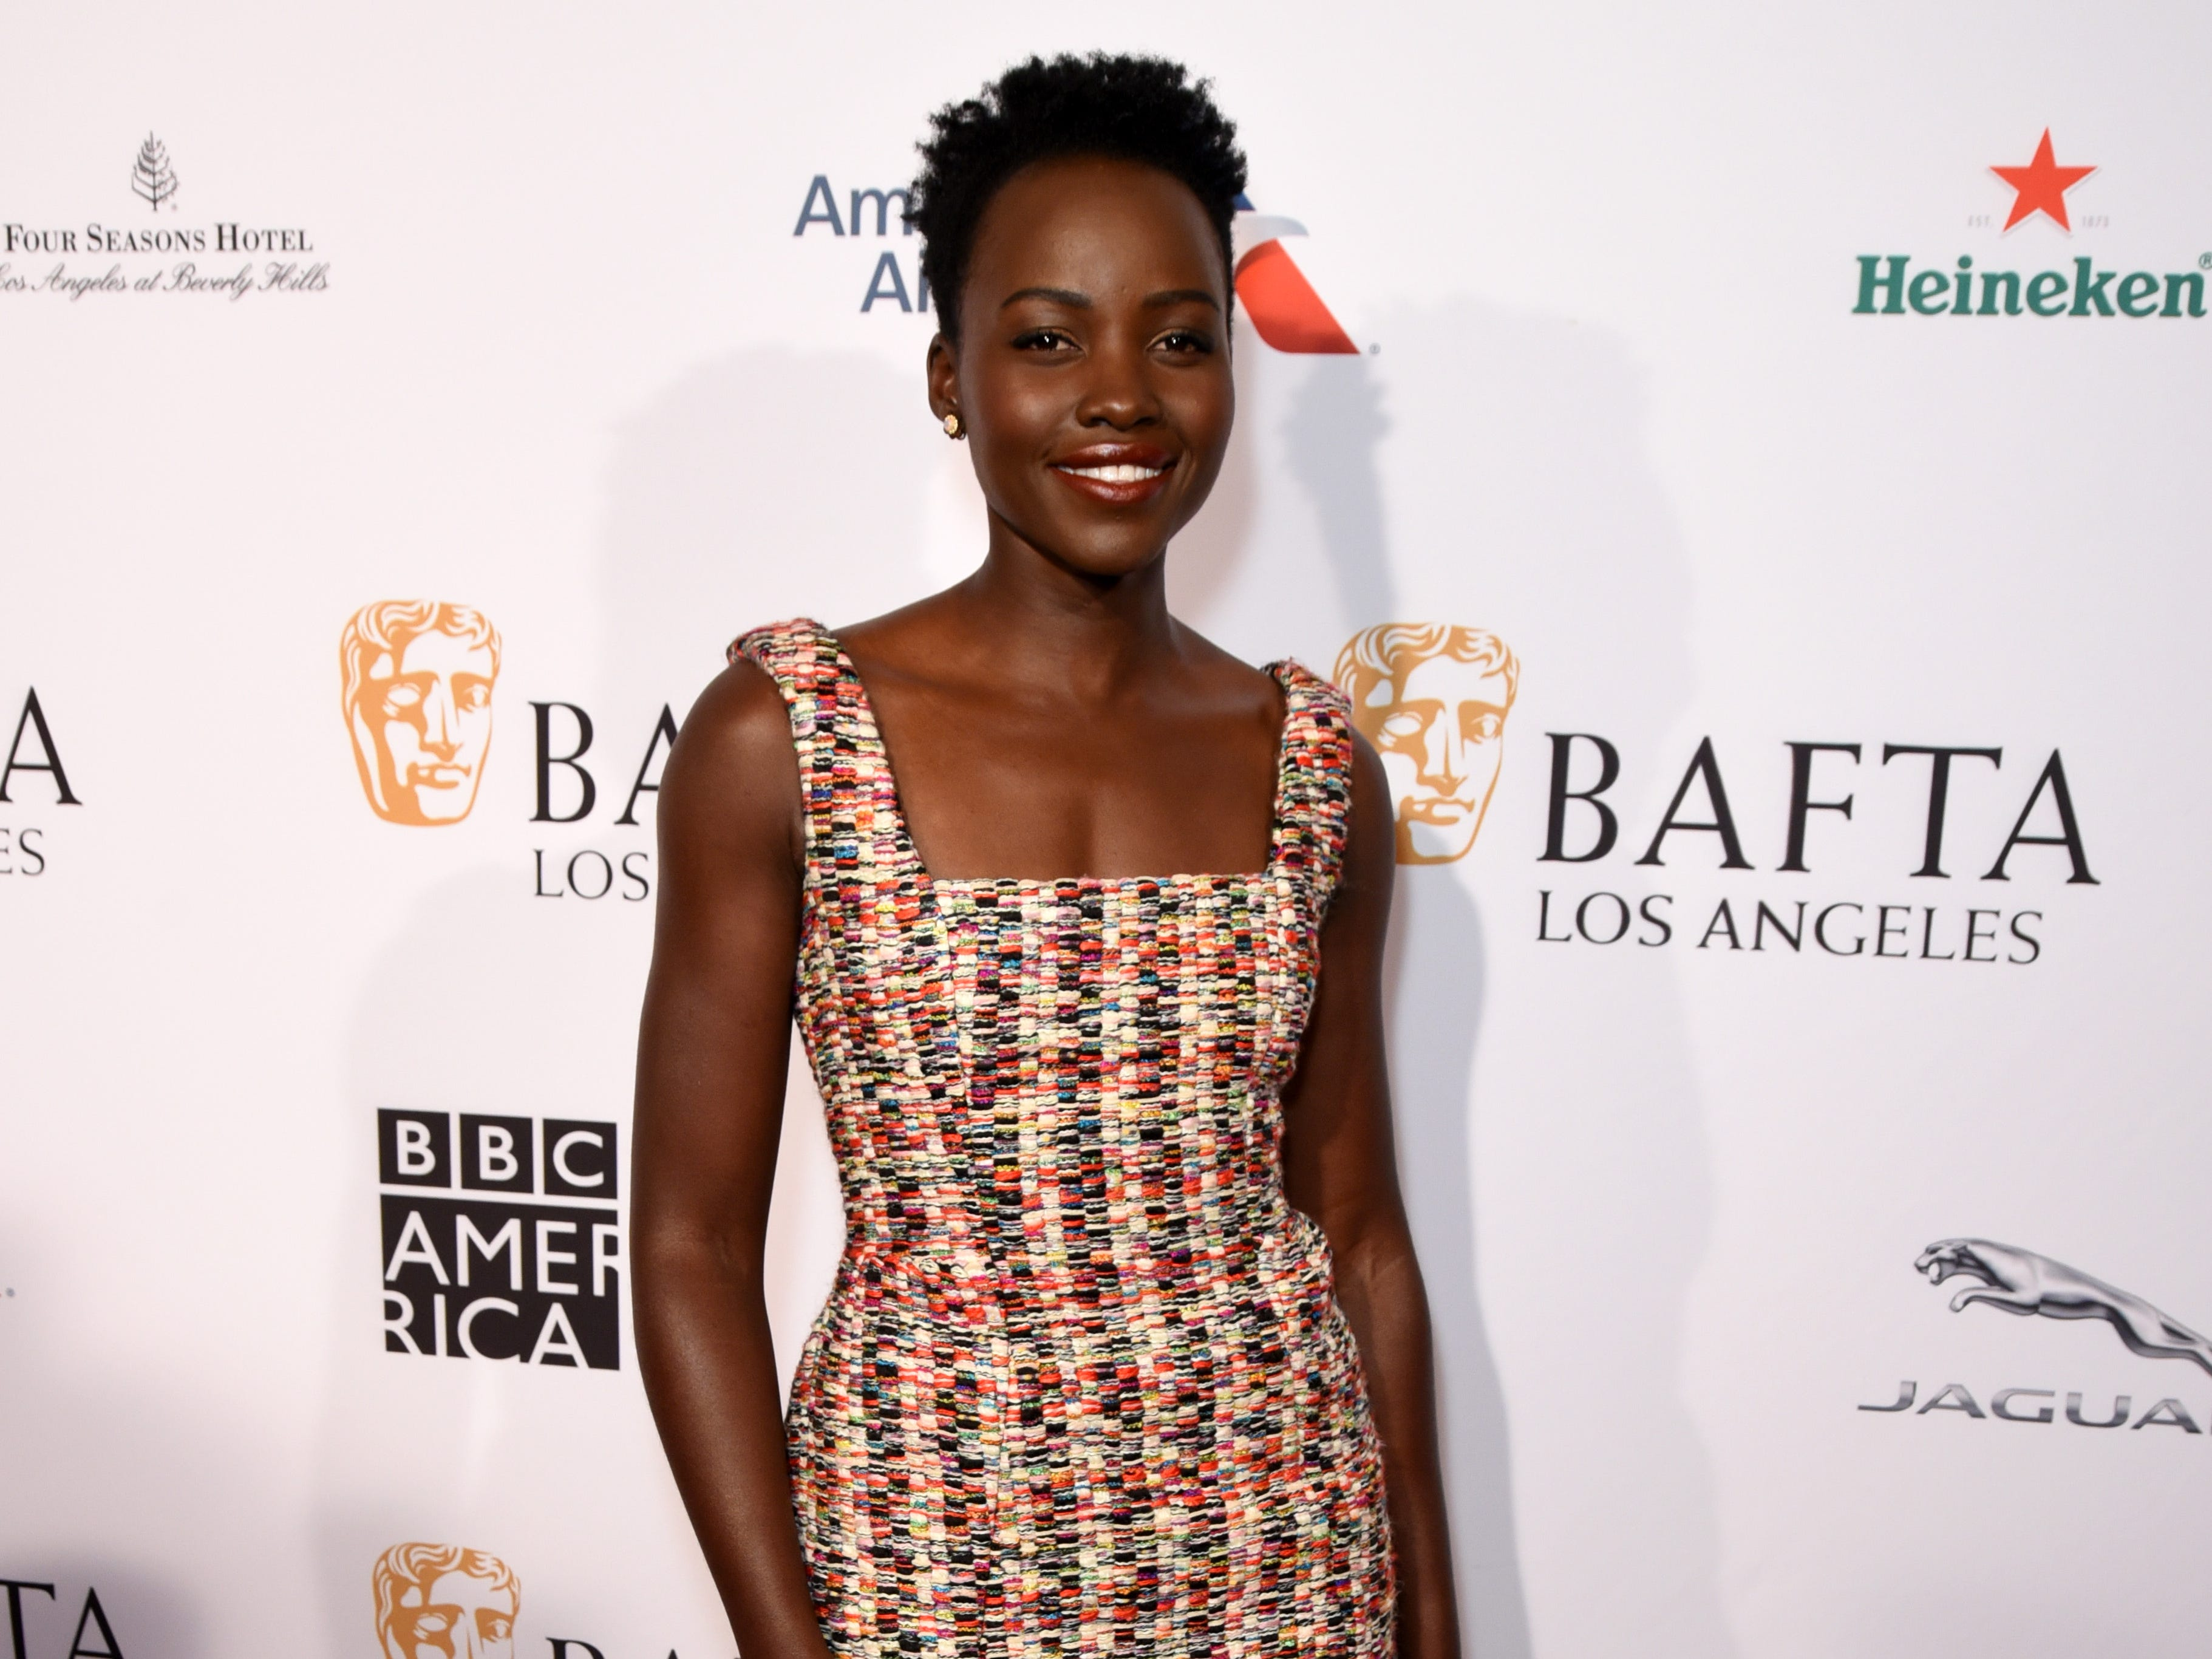 BEVERLY HILLS, CA - JANUARY 05:  Lupita Nyong'o attends The BAFTA Los Angeles Tea Party at Four Seasons Hotel Los Angeles at Beverly Hills on January 5, 2019 in Los Angeles, California.  (Photo by Presley Ann/Getty Images for BBCAmerica) ORG XMIT: 775276722 ORIG FILE ID: 1077930536